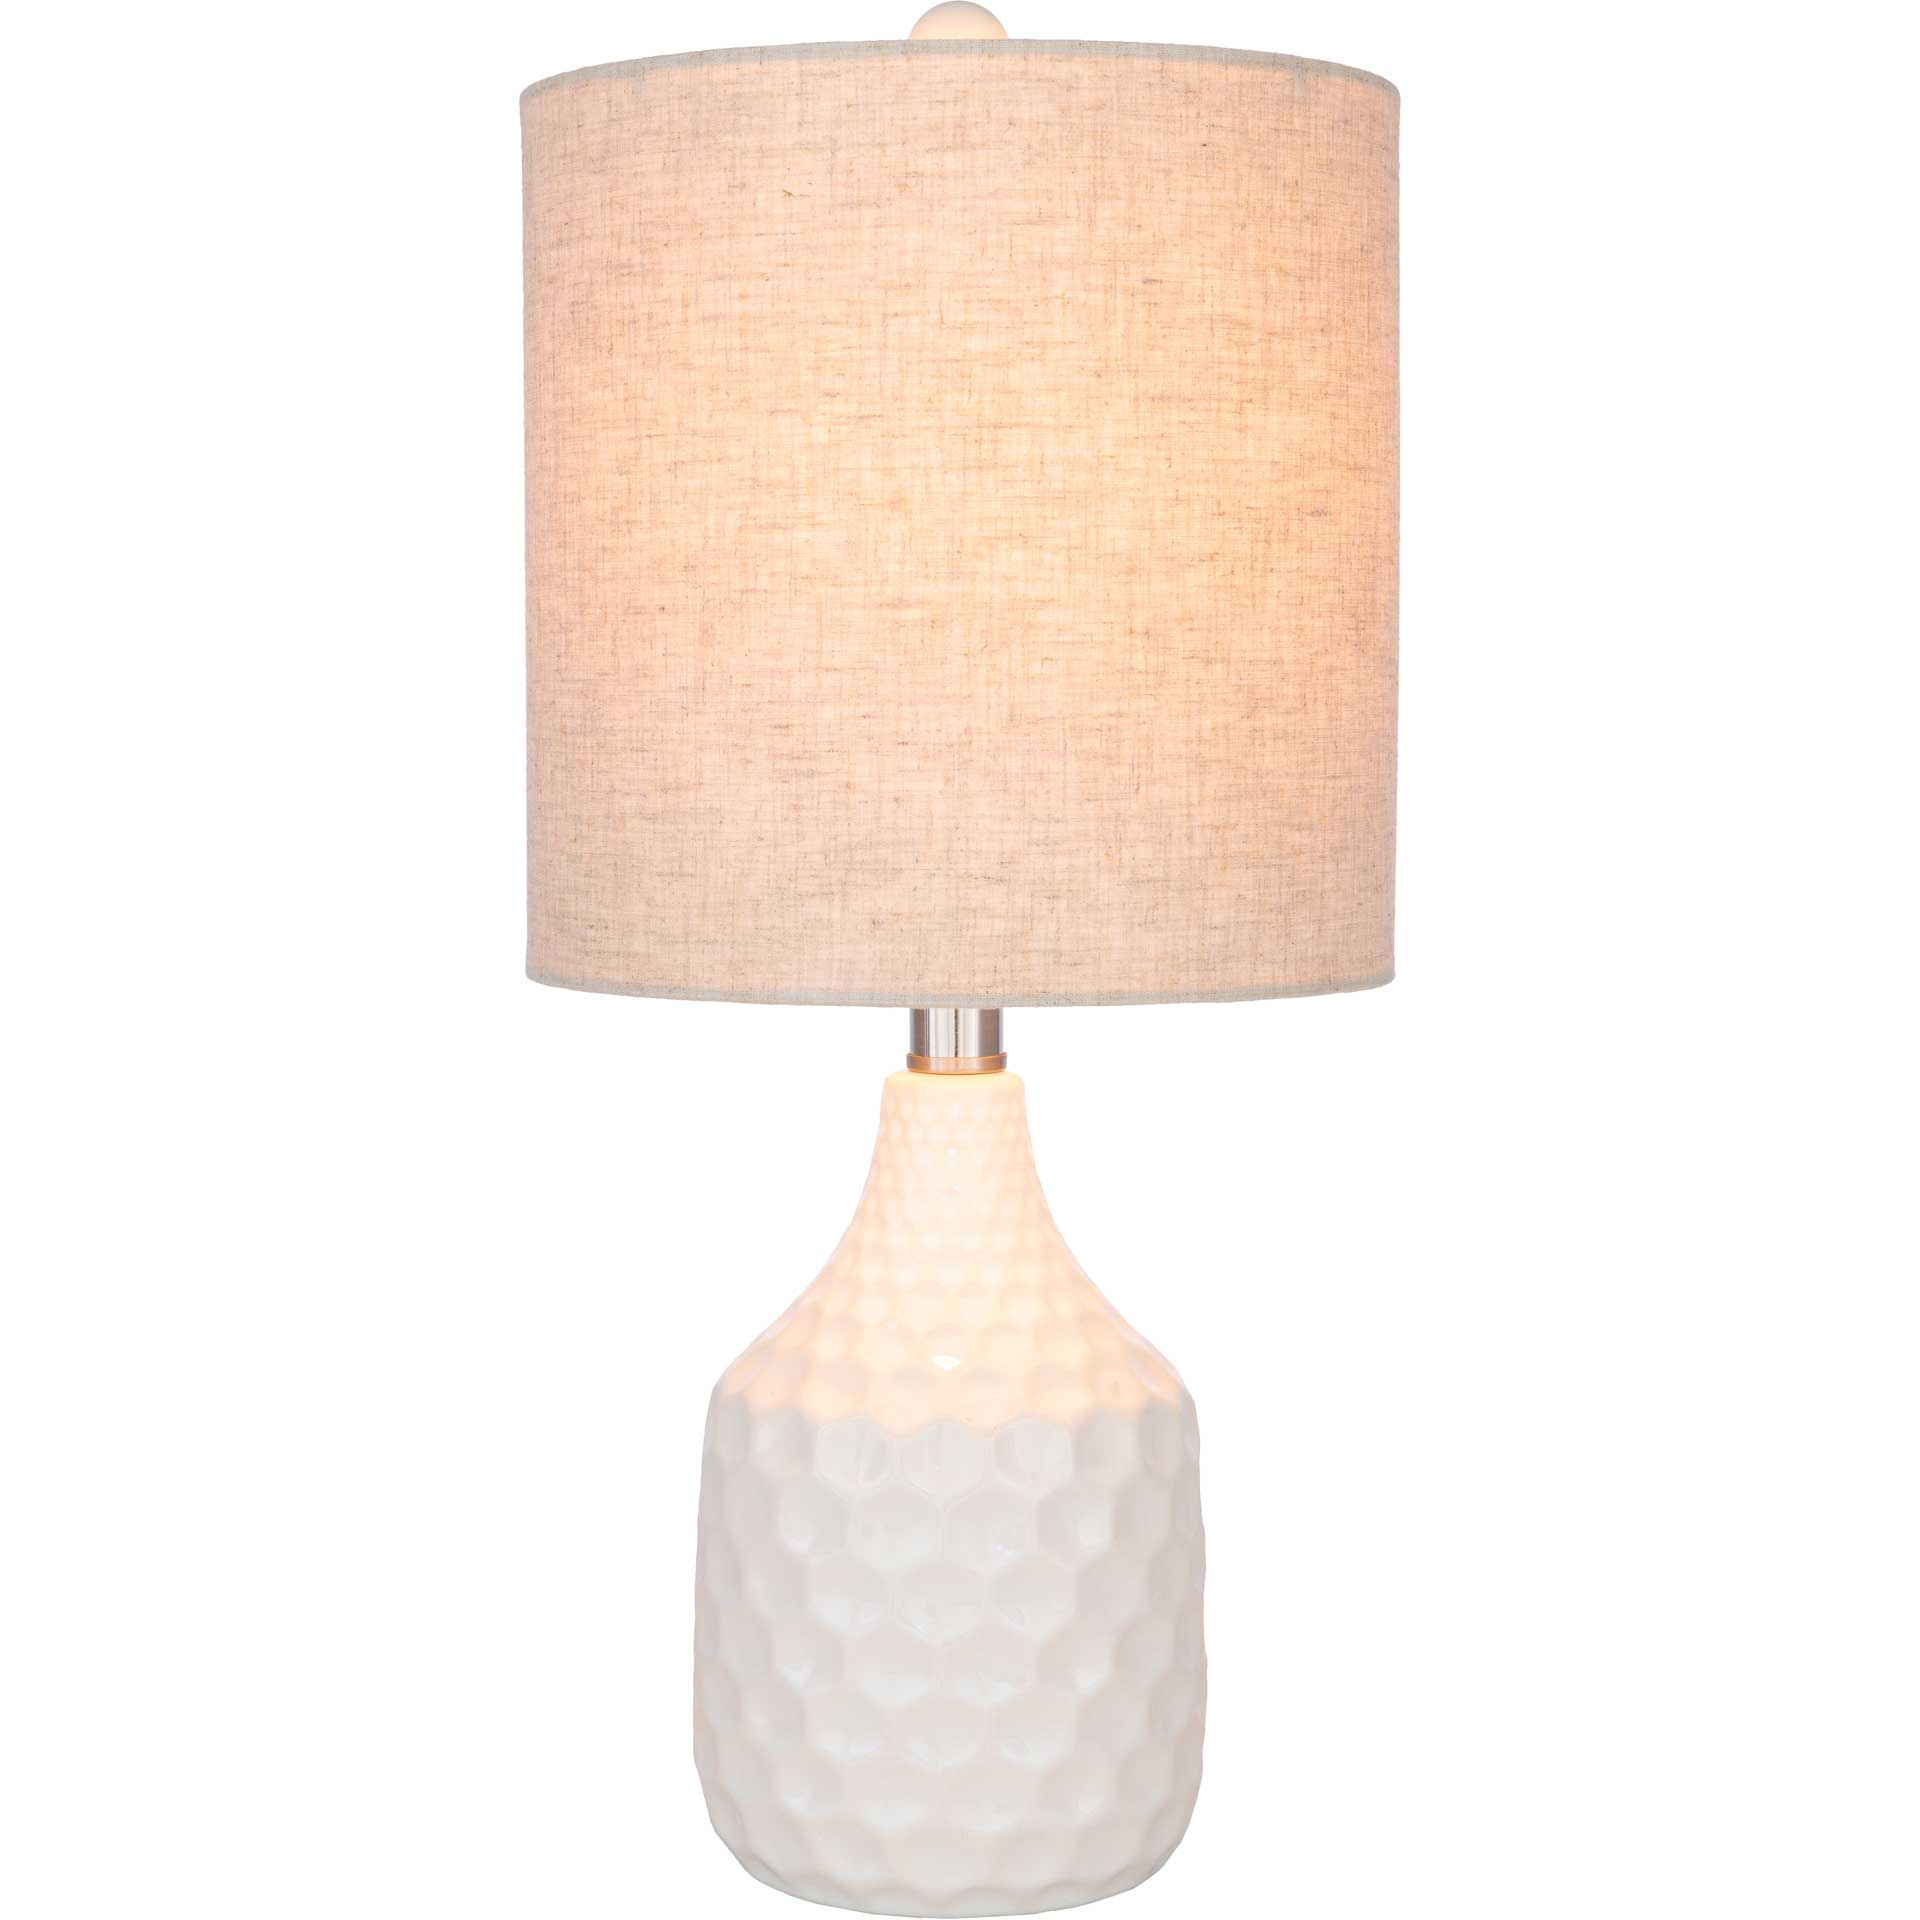 Blaze Table Lamp Ivory/White/Beige